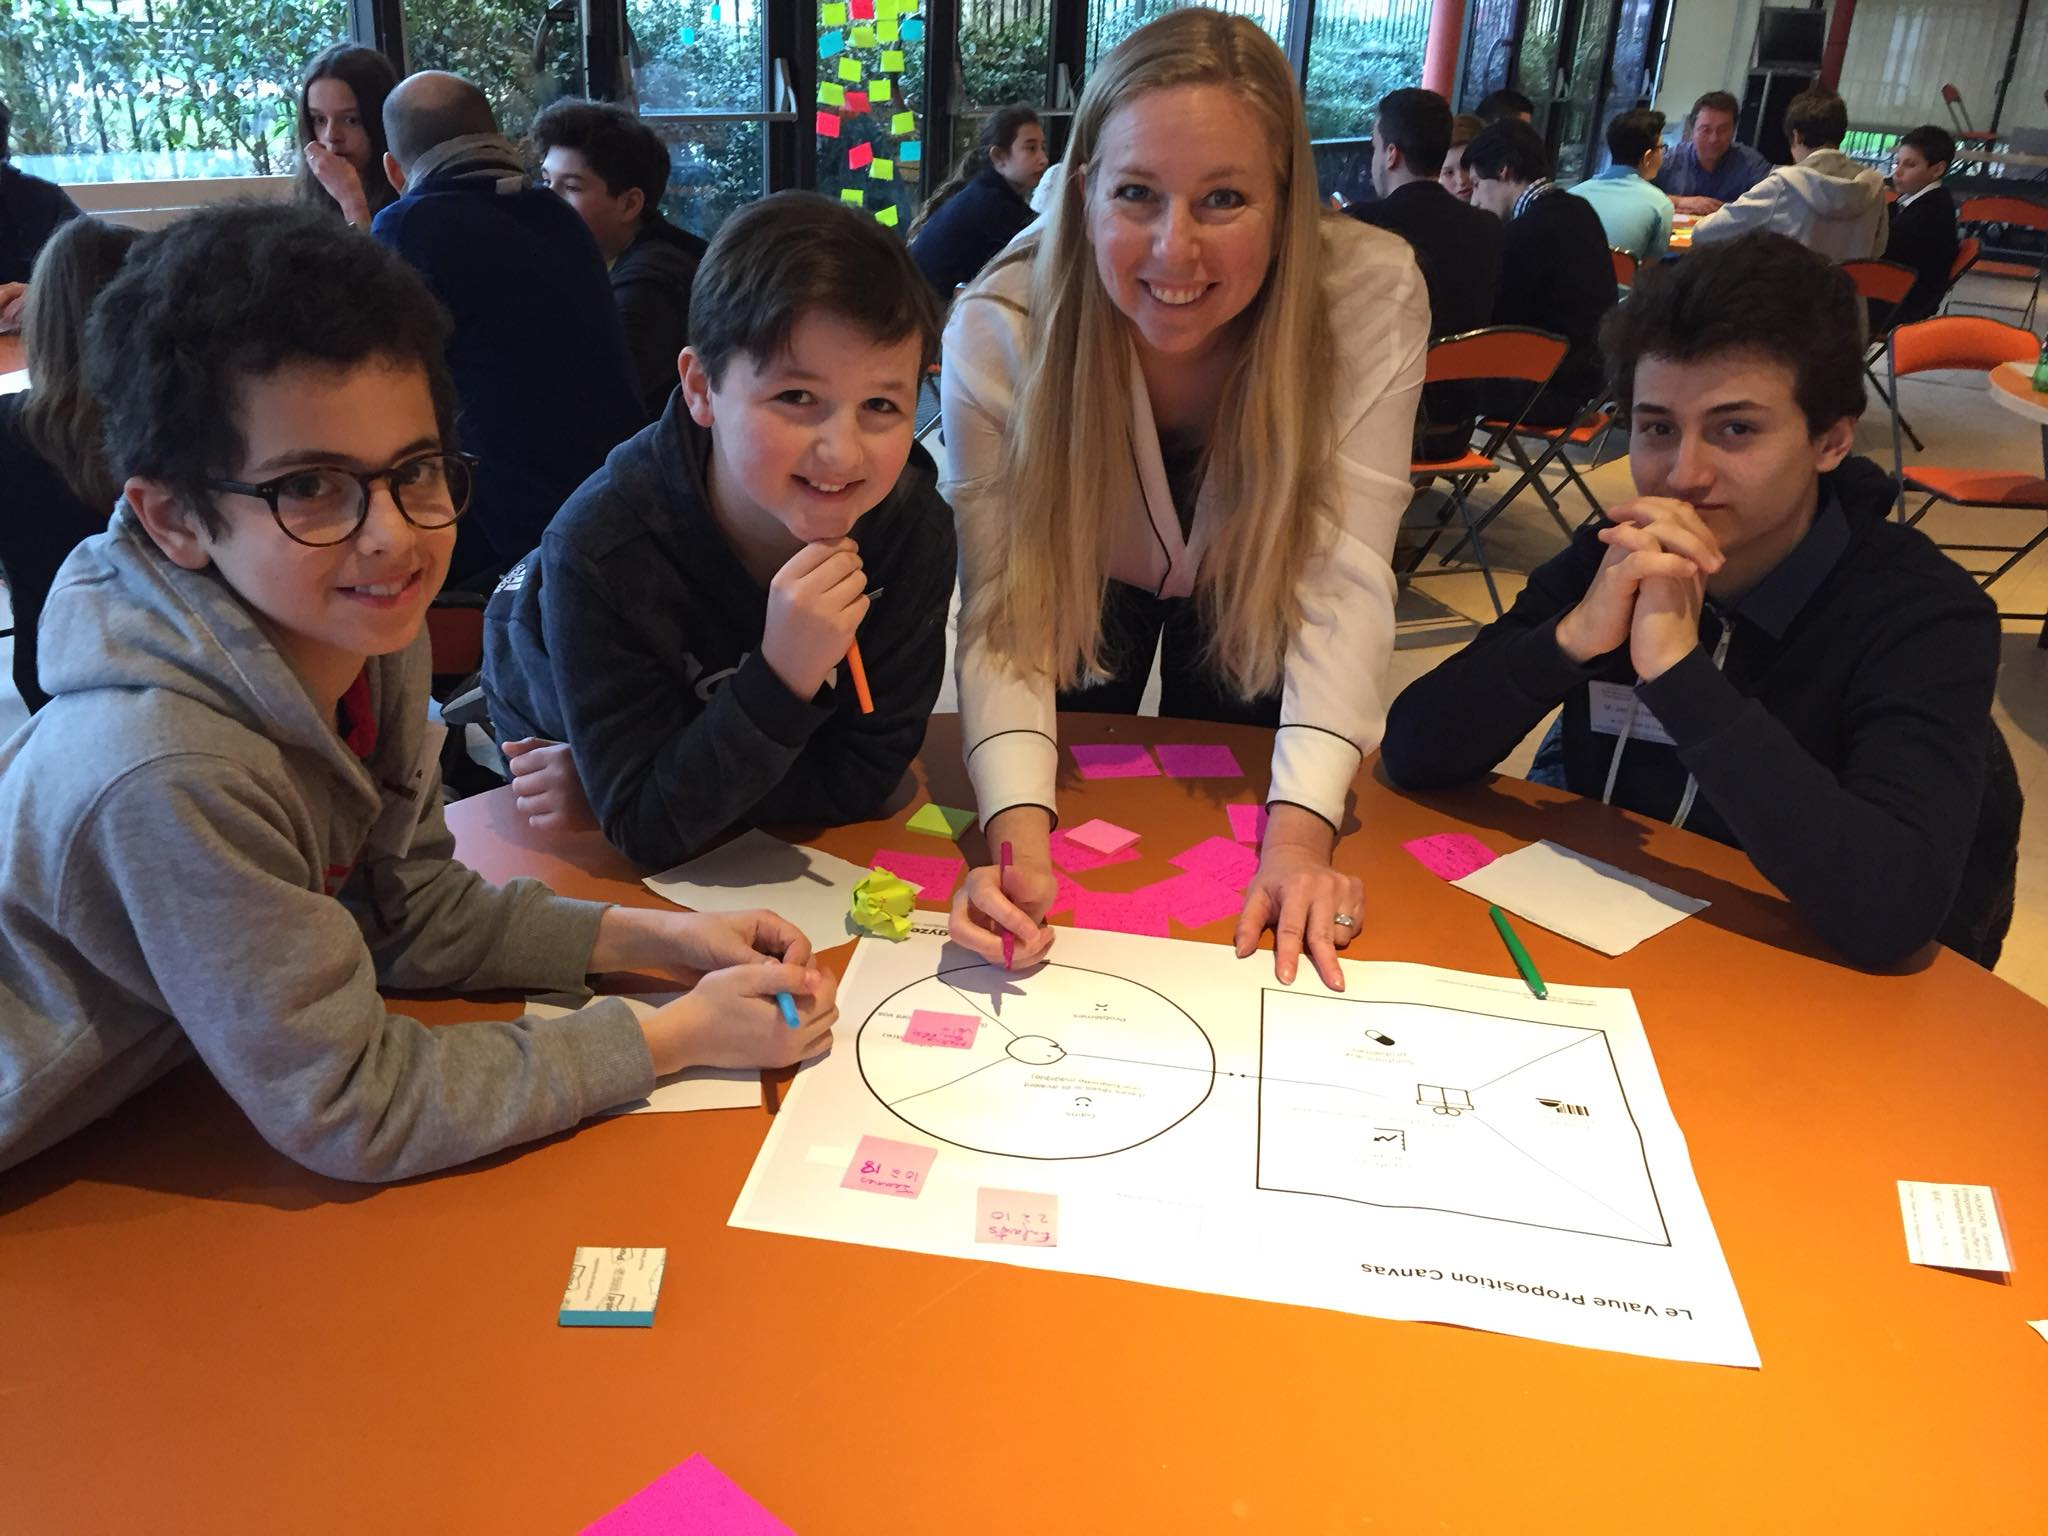 Graines Entrepreneurs France Paris atelier innovation entrepreneuriat junior hackathon generation en